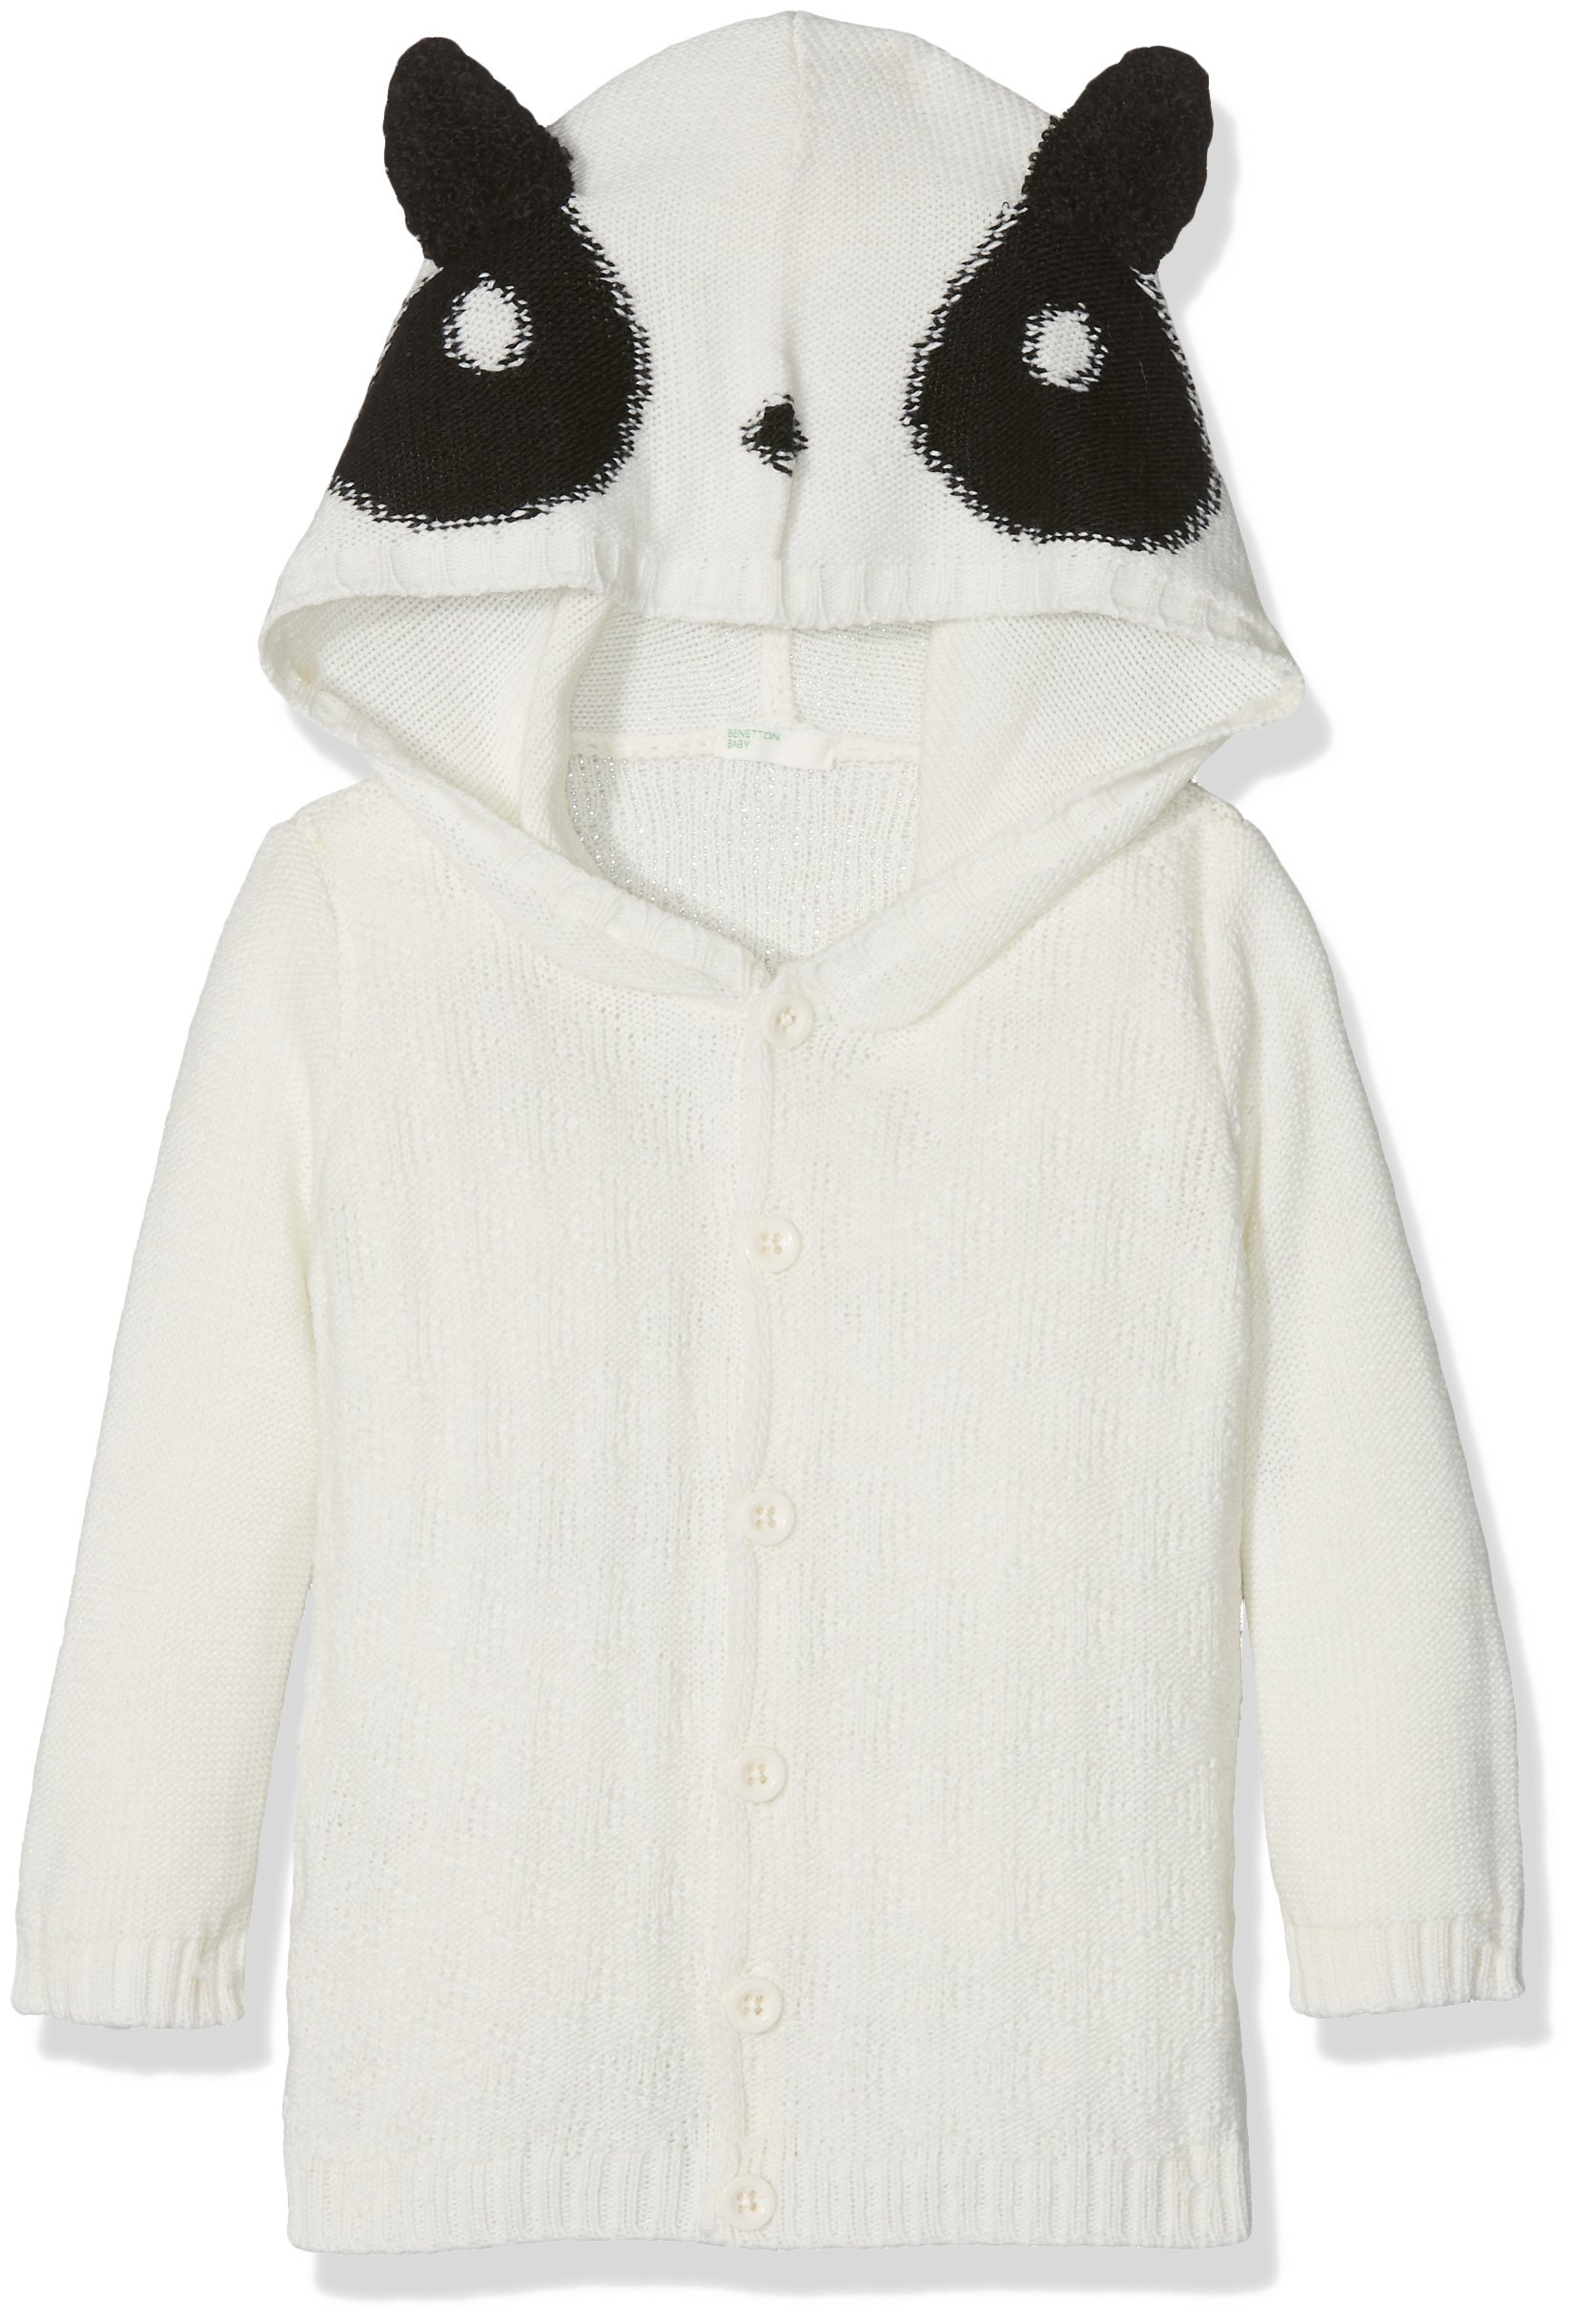 United Colors of Benetton Jacket W/Hood L/S Chaqueta para Bebés 1